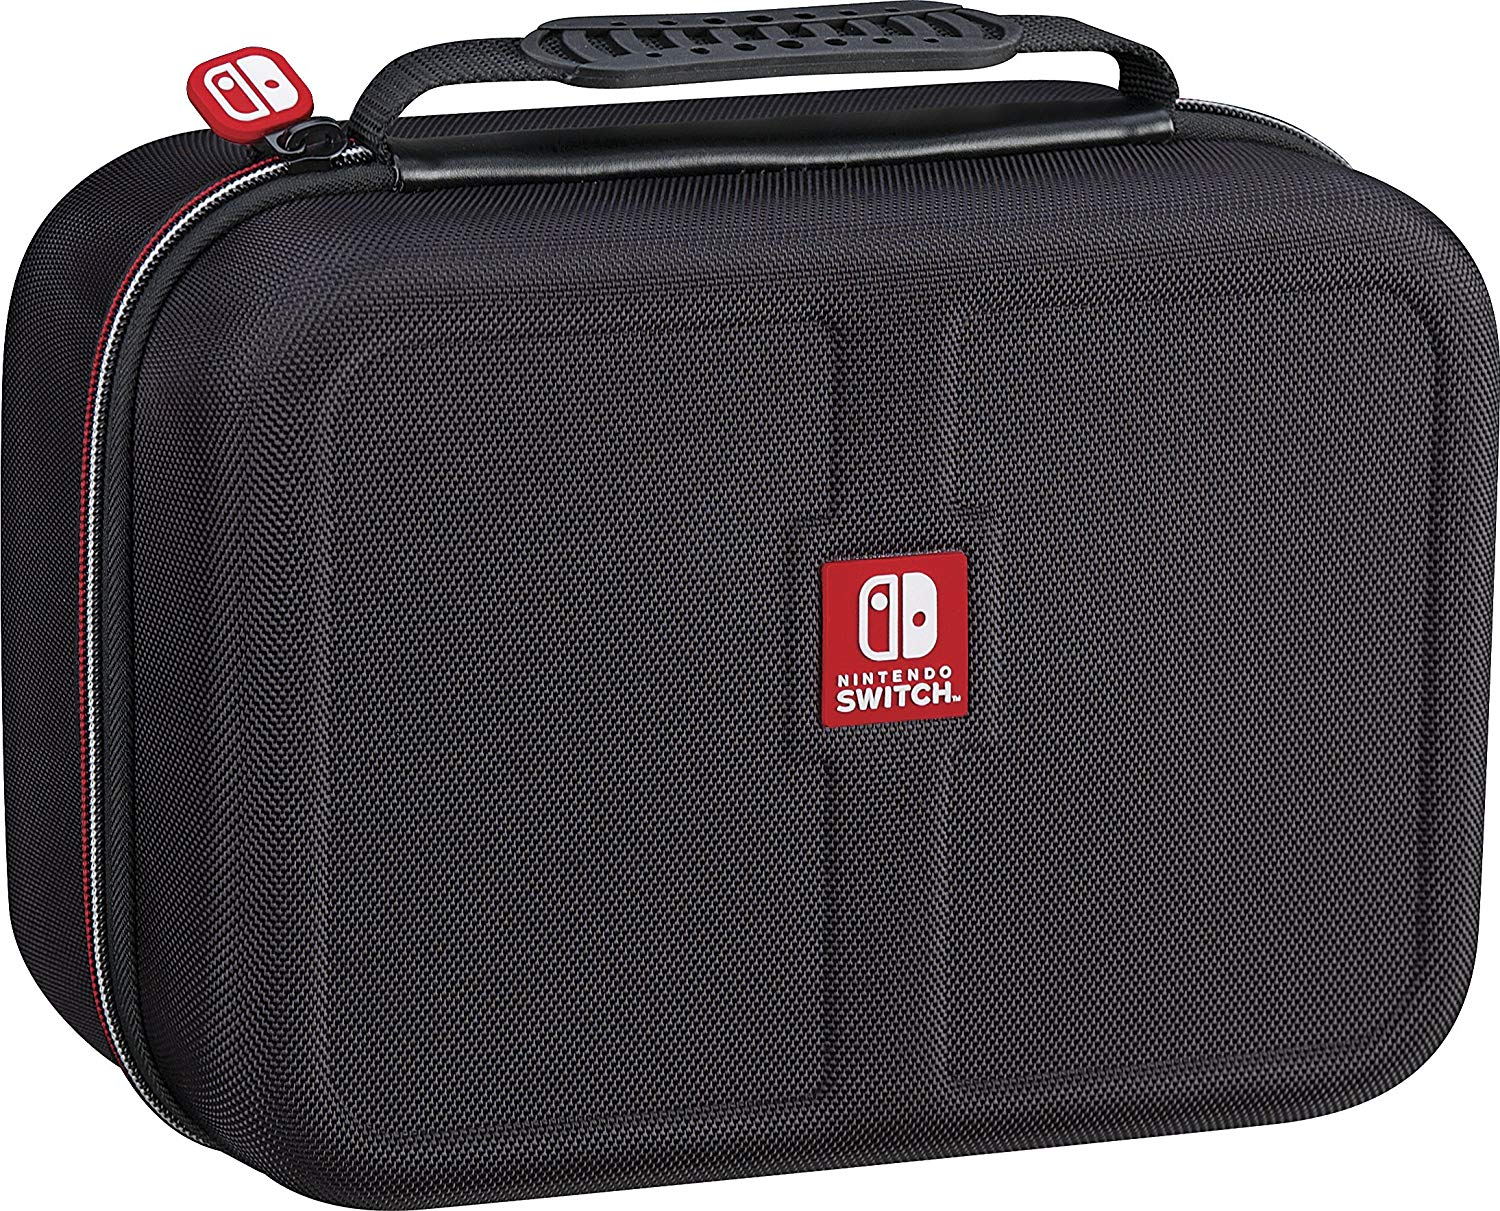 tui-dung-full-do-case-du-lich-nintendo-switch